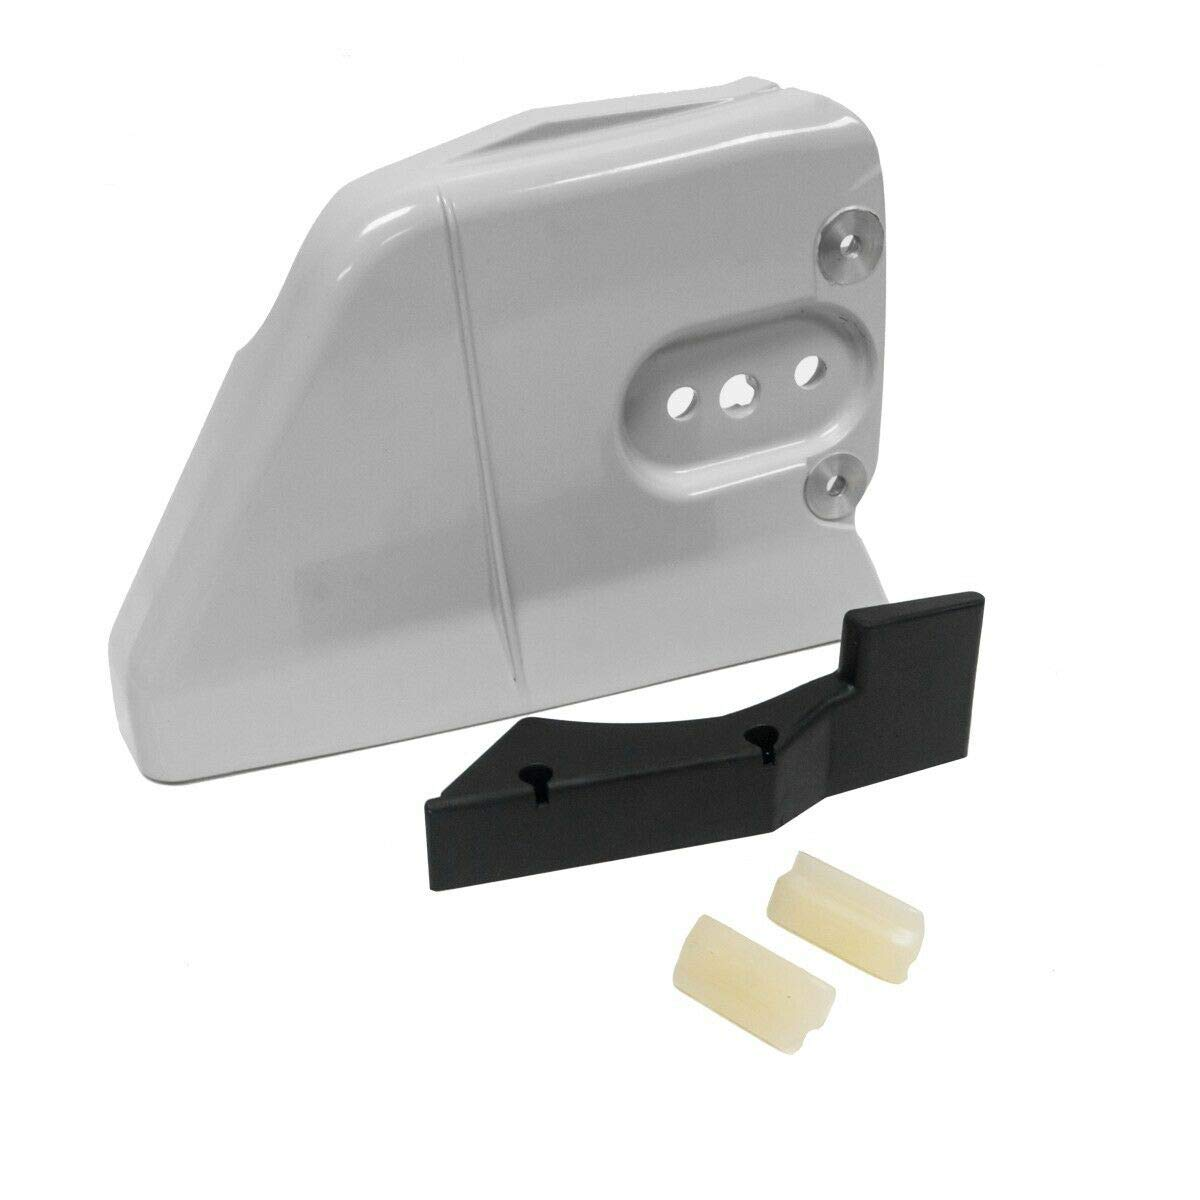 Bar Side Clutch Cover for Stihl 046 MS460 066 064 044 Chainsaws 1122 648 0403 by Replaces Stihl